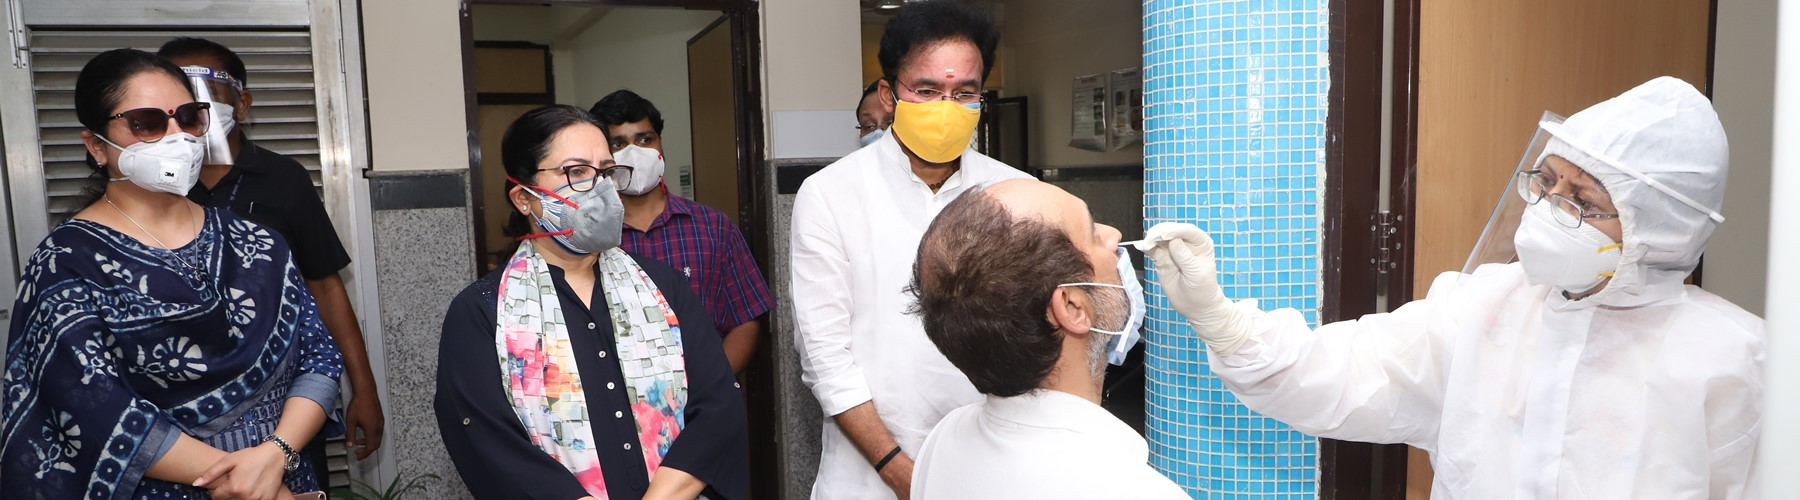 Minister of State for Home Affairs, Shri G. Kishan Reddy inspecting facilities during his visit to a COVID-19 Testing Centre in Delhi on Thursday, June 18, 2020.